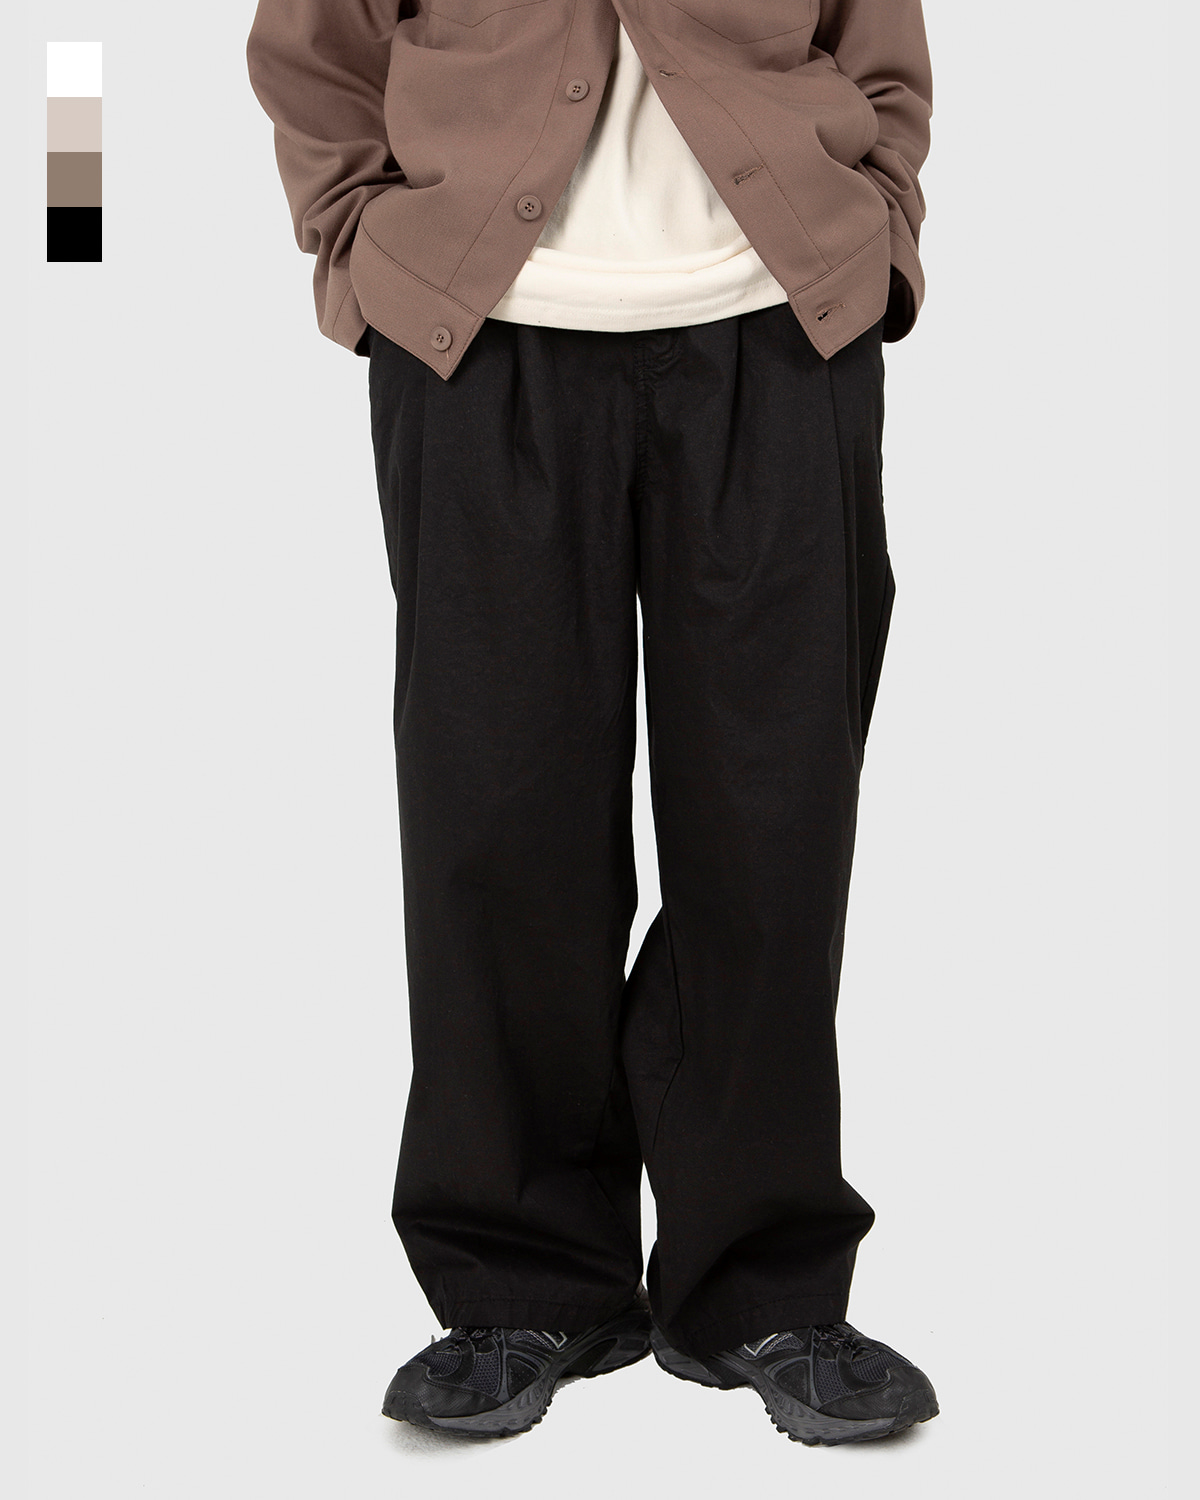 raucohouse-BALLOON FIT WIDE TWO TUCK PANTS - RAUCO HOUSE♡韓國男裝褲子